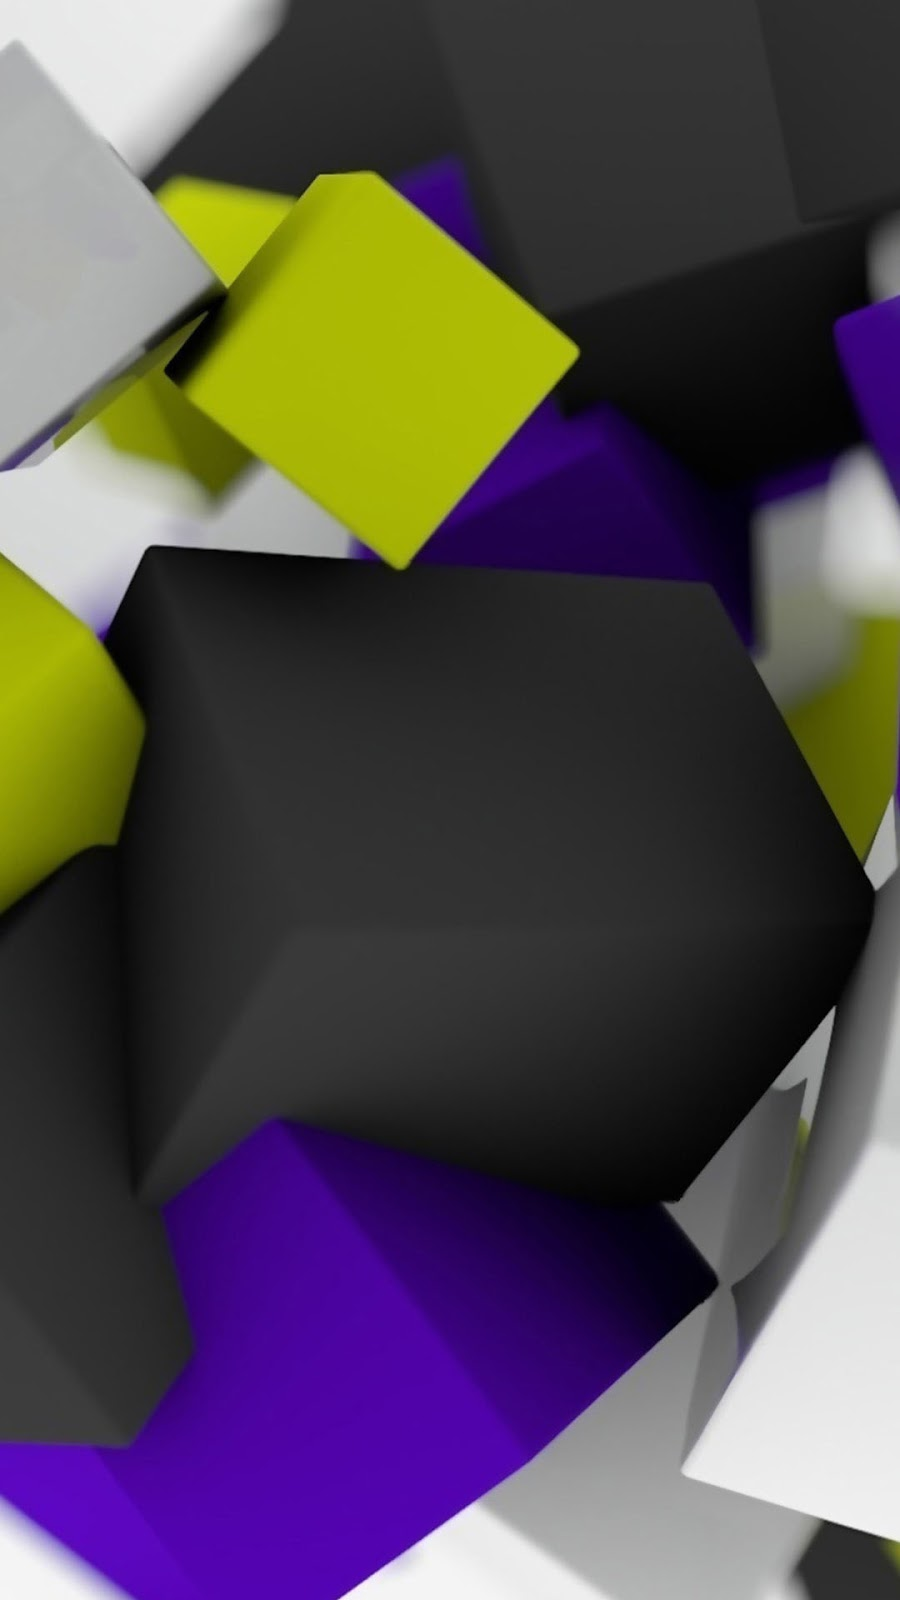 Floating 3D Colorful Cubes Android Wallpaper